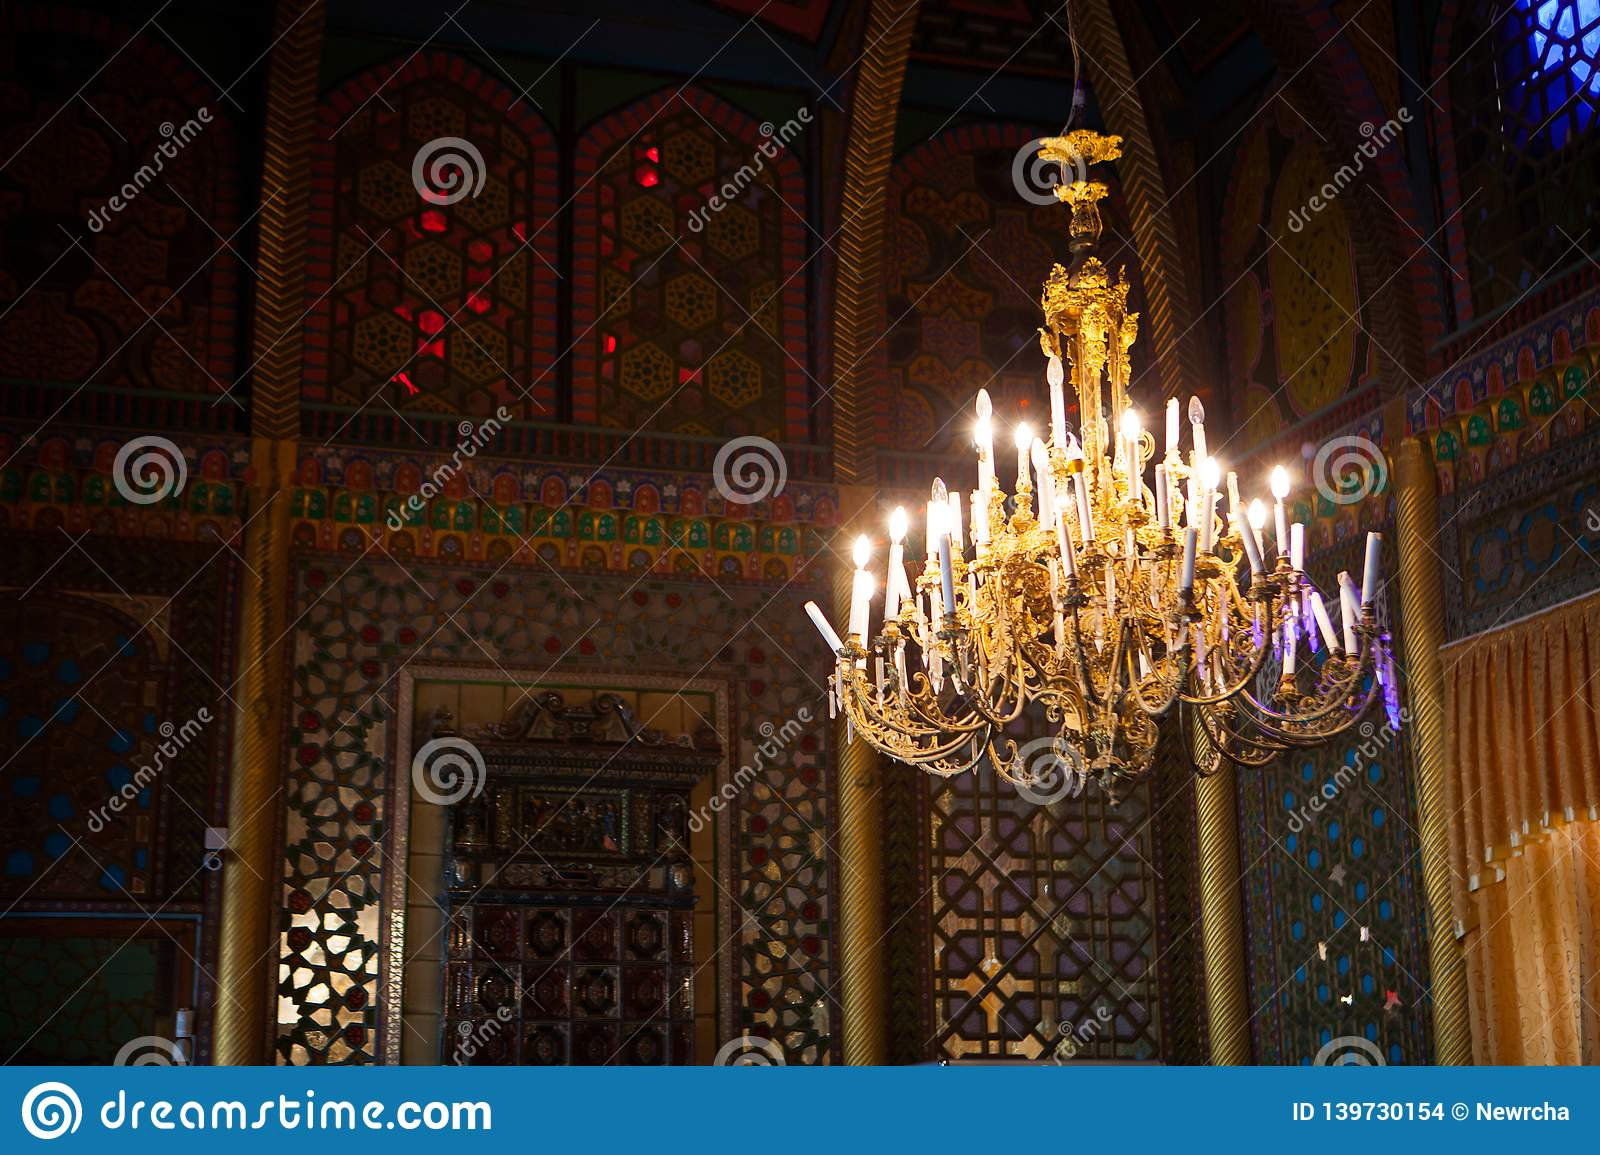 Ceiling and antique chandelier at Sitorai Mohi Xossa Saroyi Palace